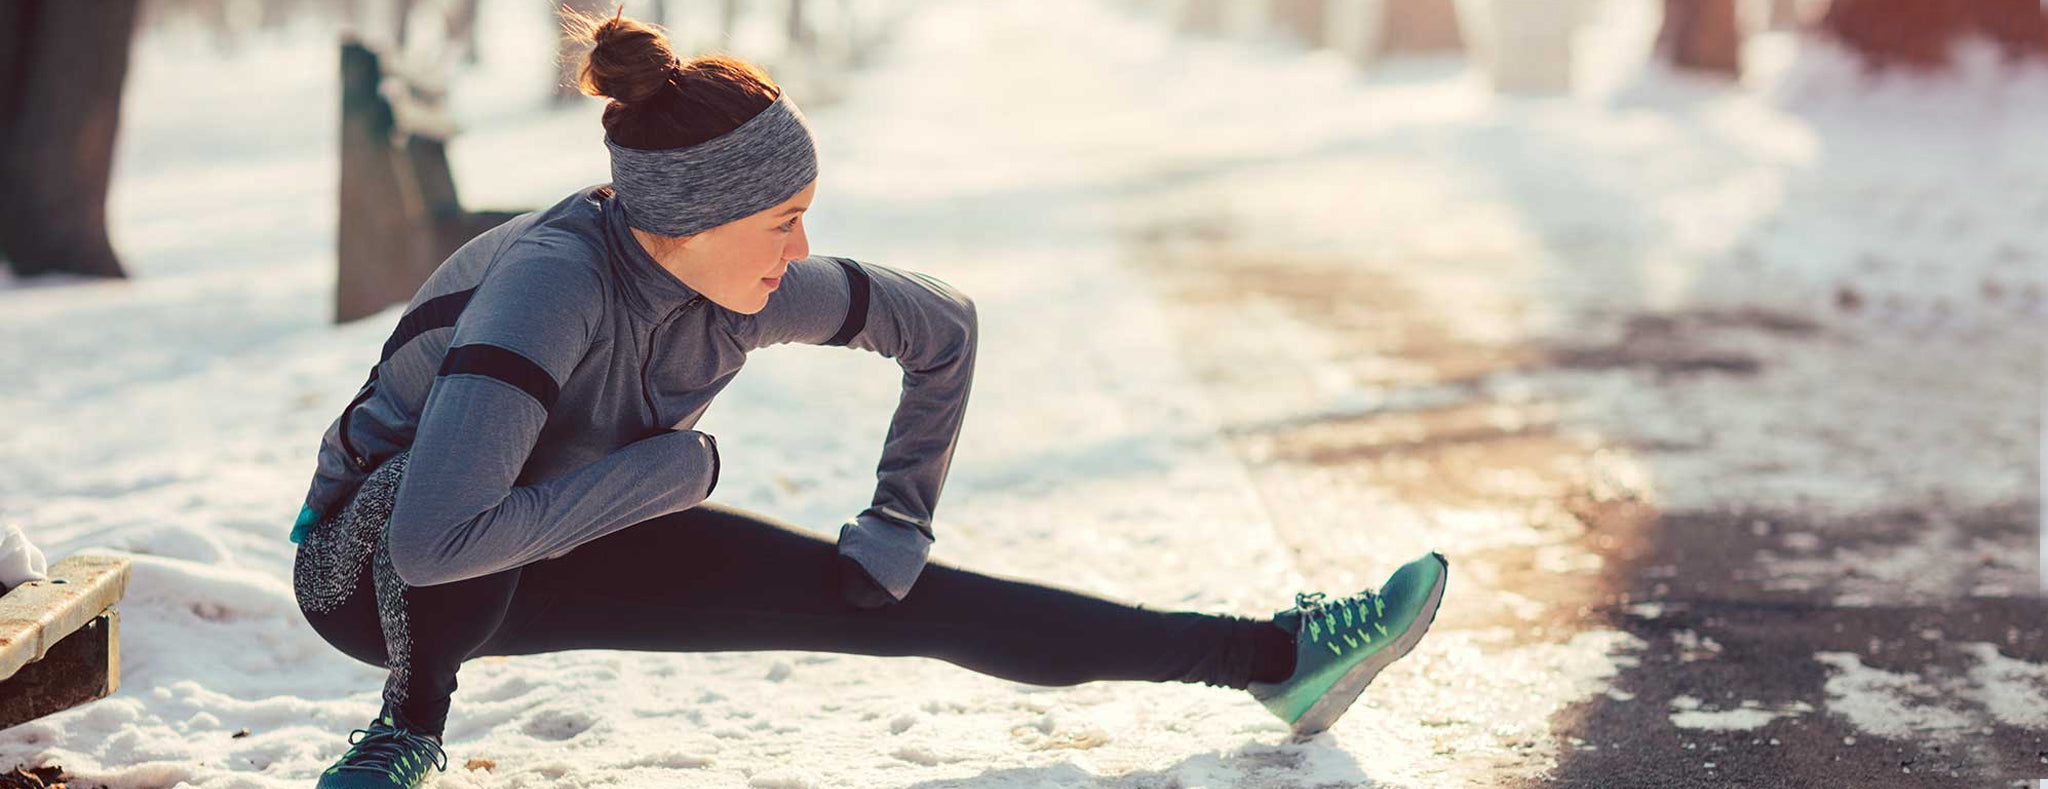 Girl doing workout in winter